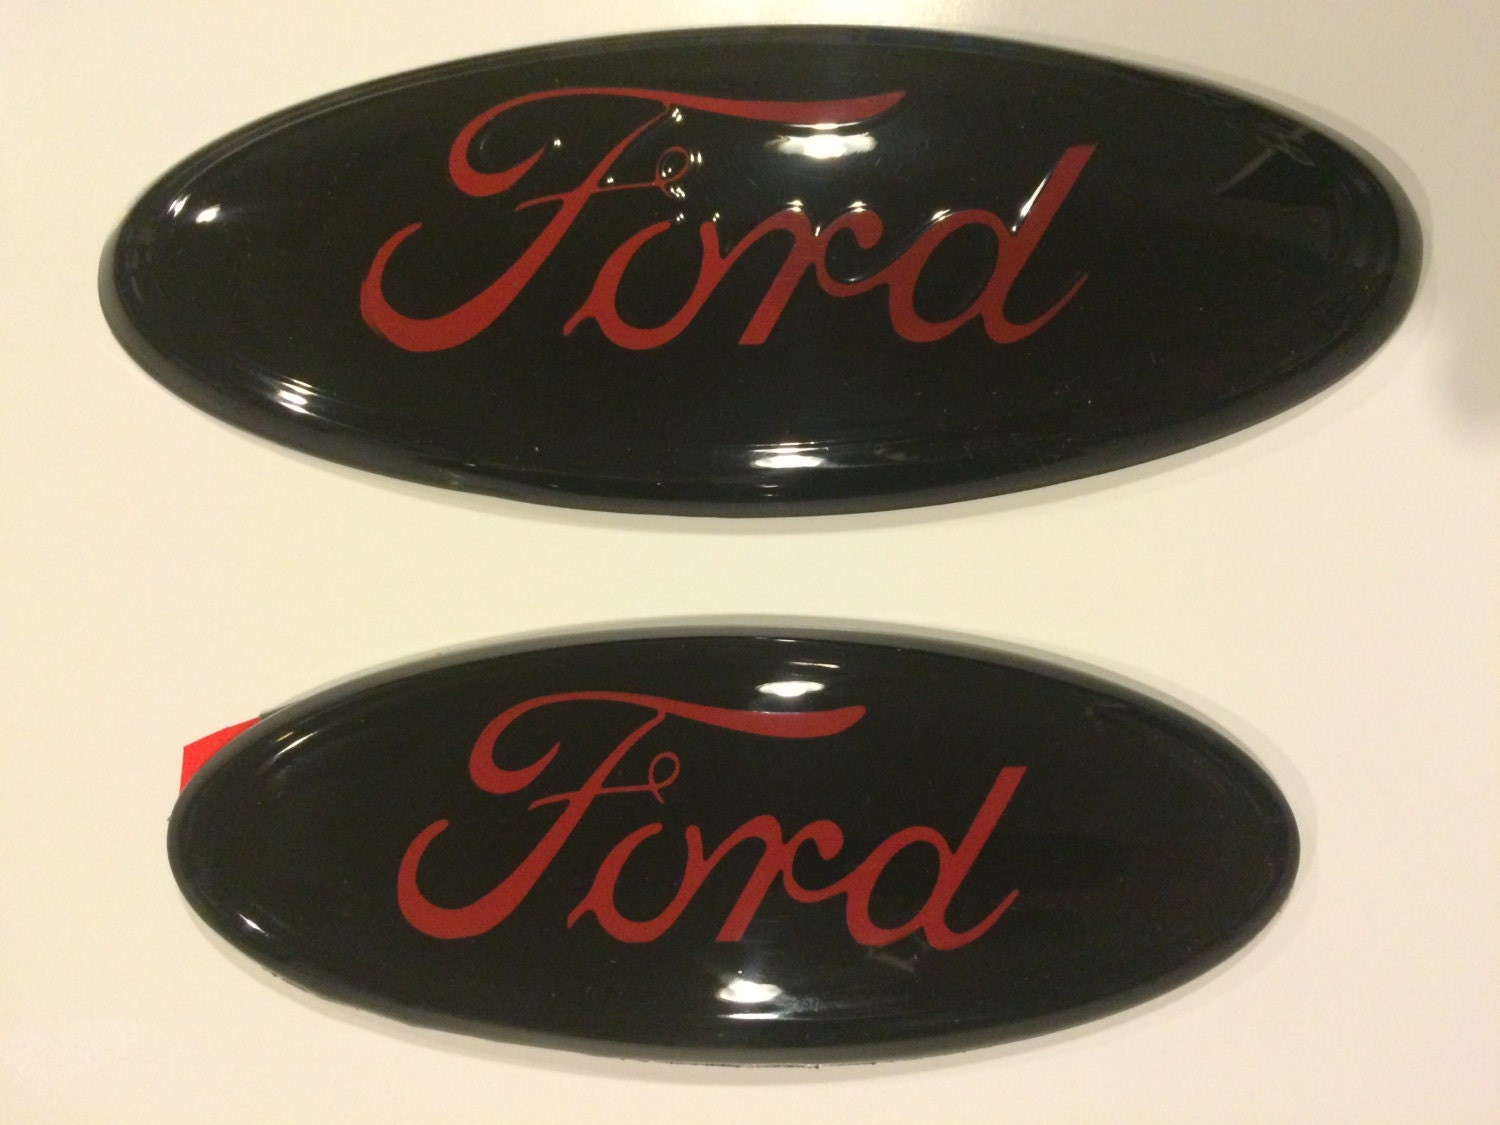 Custom Ford F150 Emblems >> 2004-14 Ford 9 inch and 7 inch oval emblem setBlack & Red